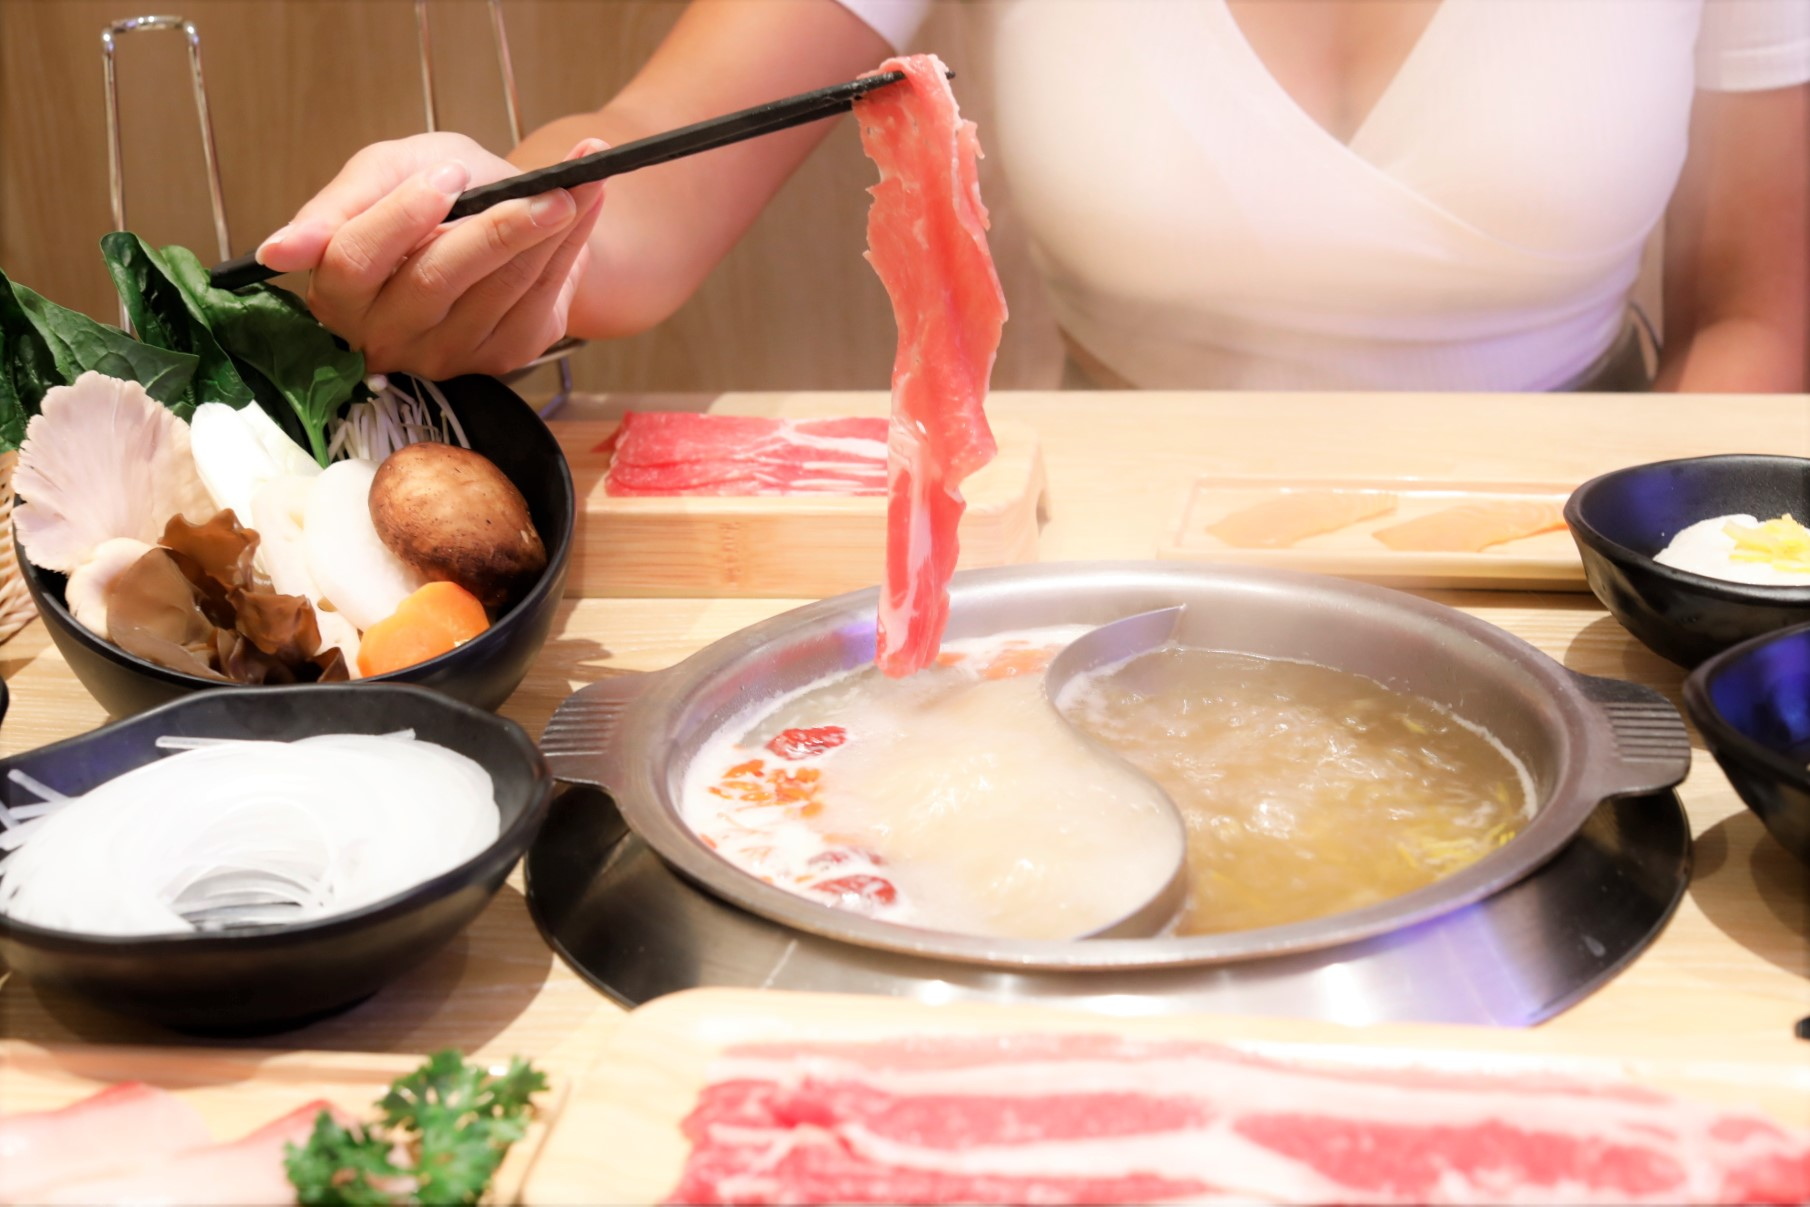 11 Japanese Hotpot Restaurants In Singapore – For Comforting Collagen, Tonkotsu, Yuzu Soup And More